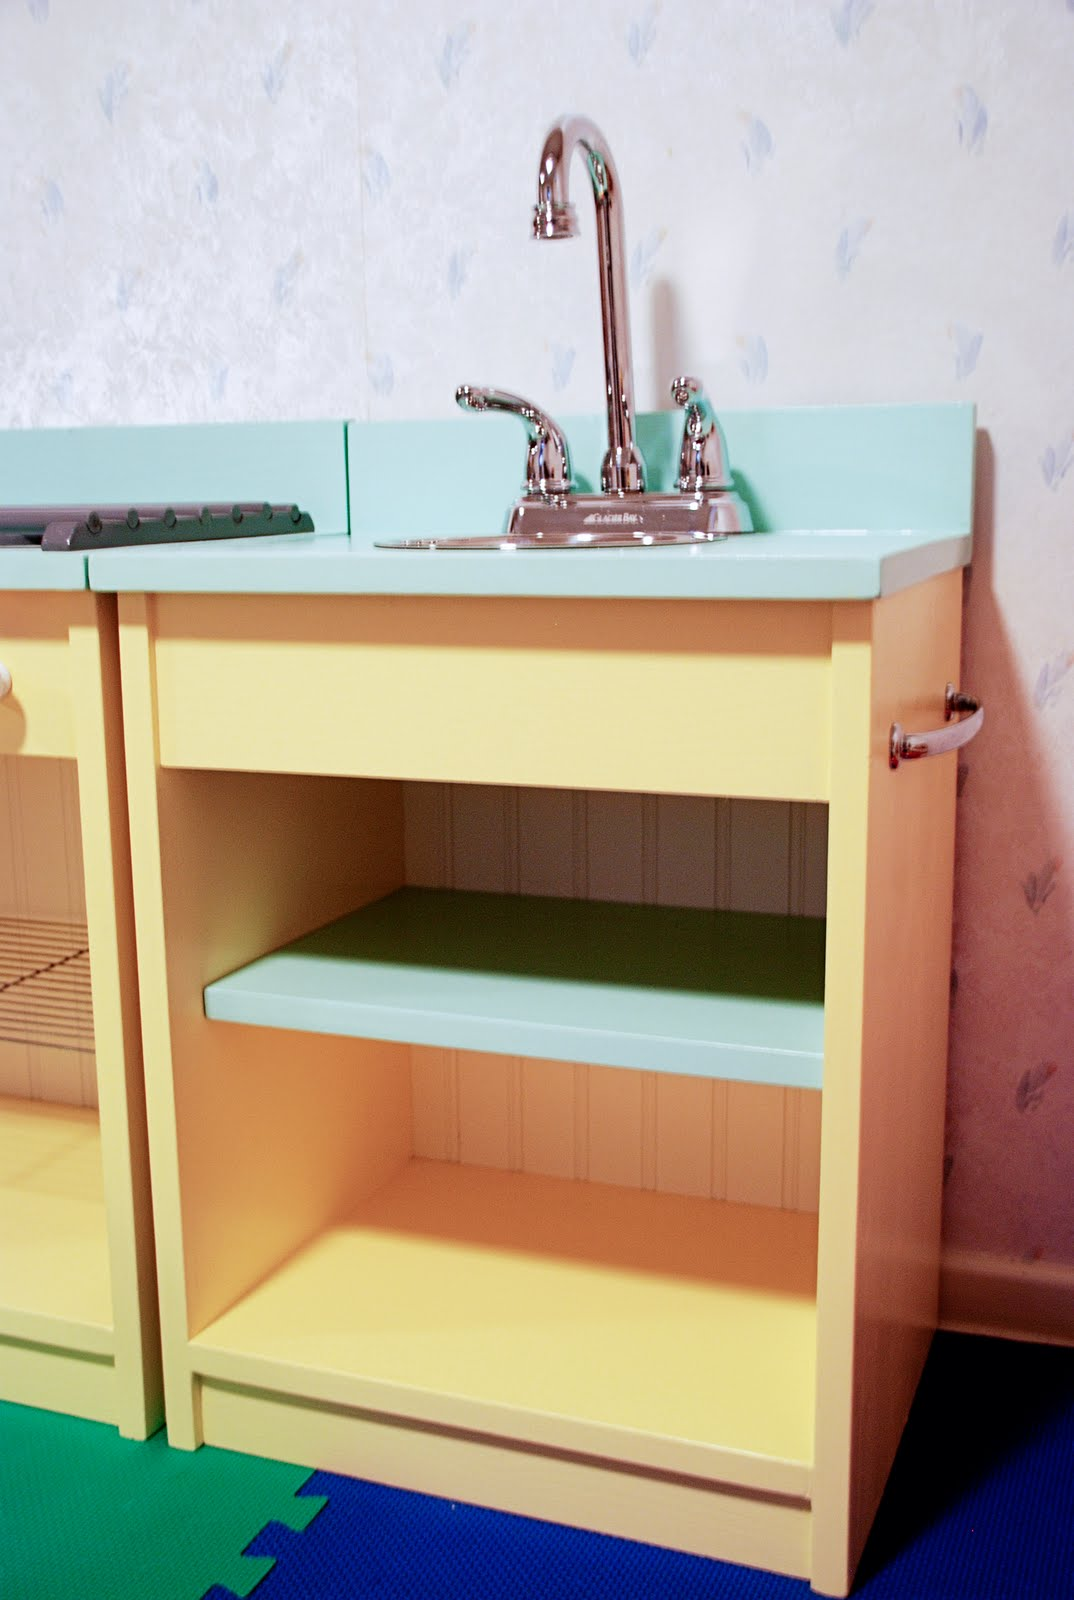 diy wooden play kitchen, play kitchen stove, play kitchen sink, homemade play kitchen, diy toy kitchen